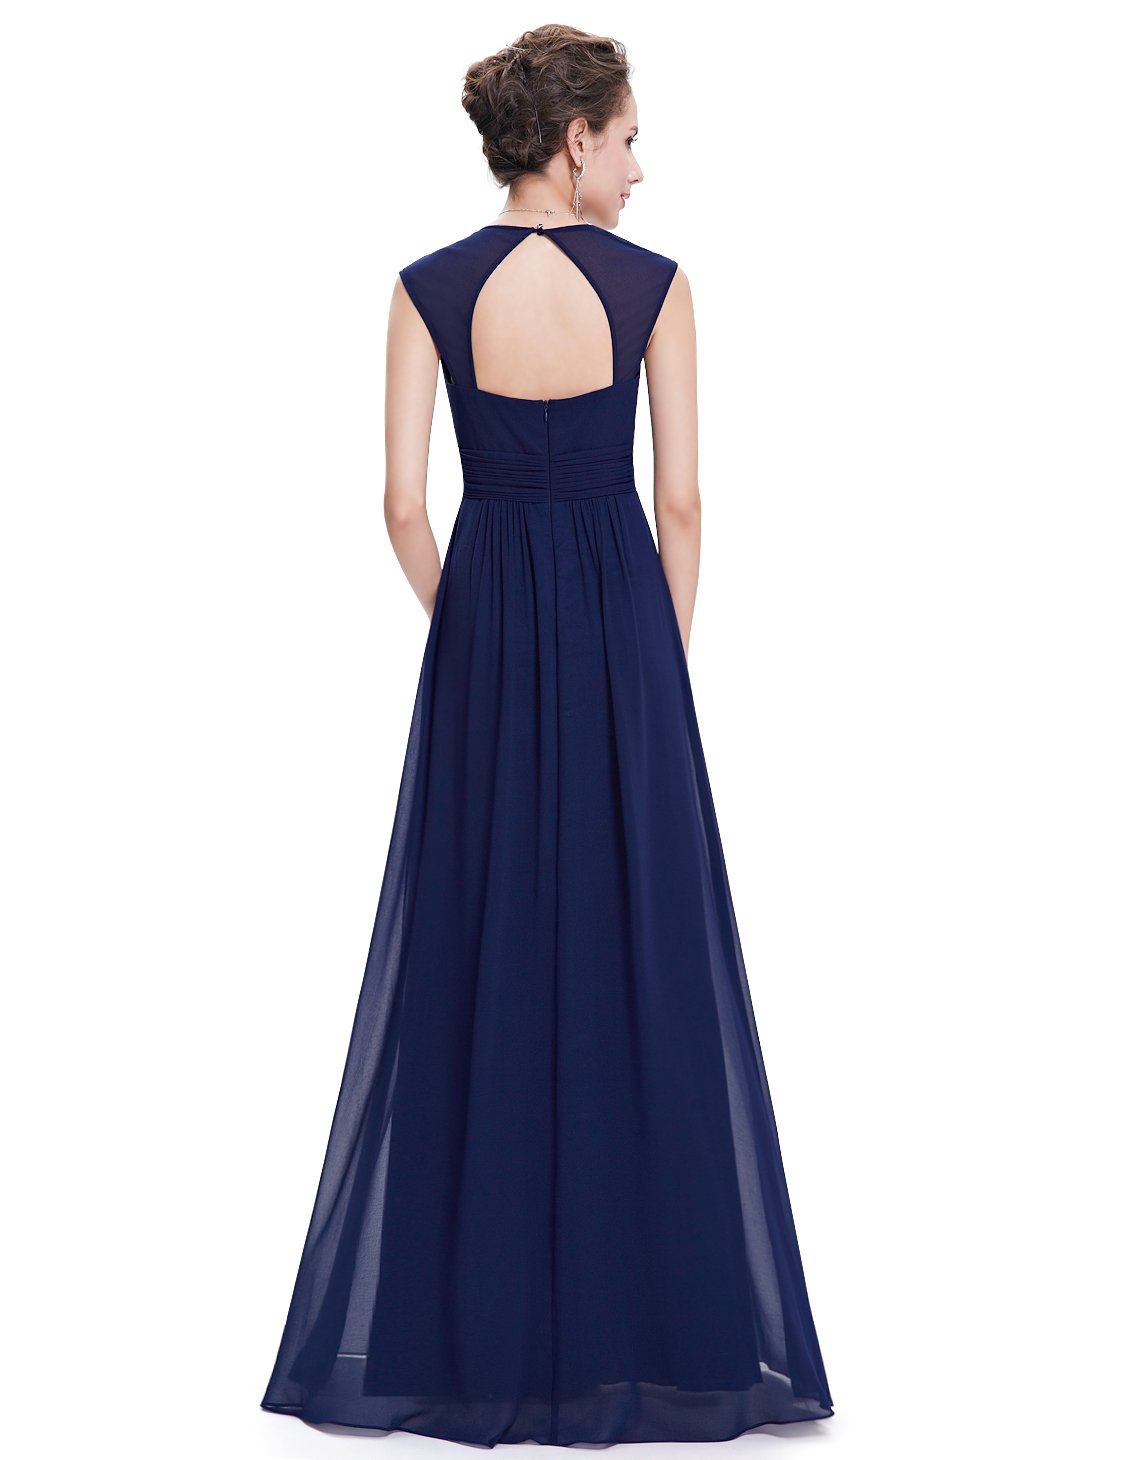 Ever-Pretty Womens Floor Length Beaded Grecian Style Military Ball Dress 6 US Navy Blue by Ever-Pretty (Image #2)